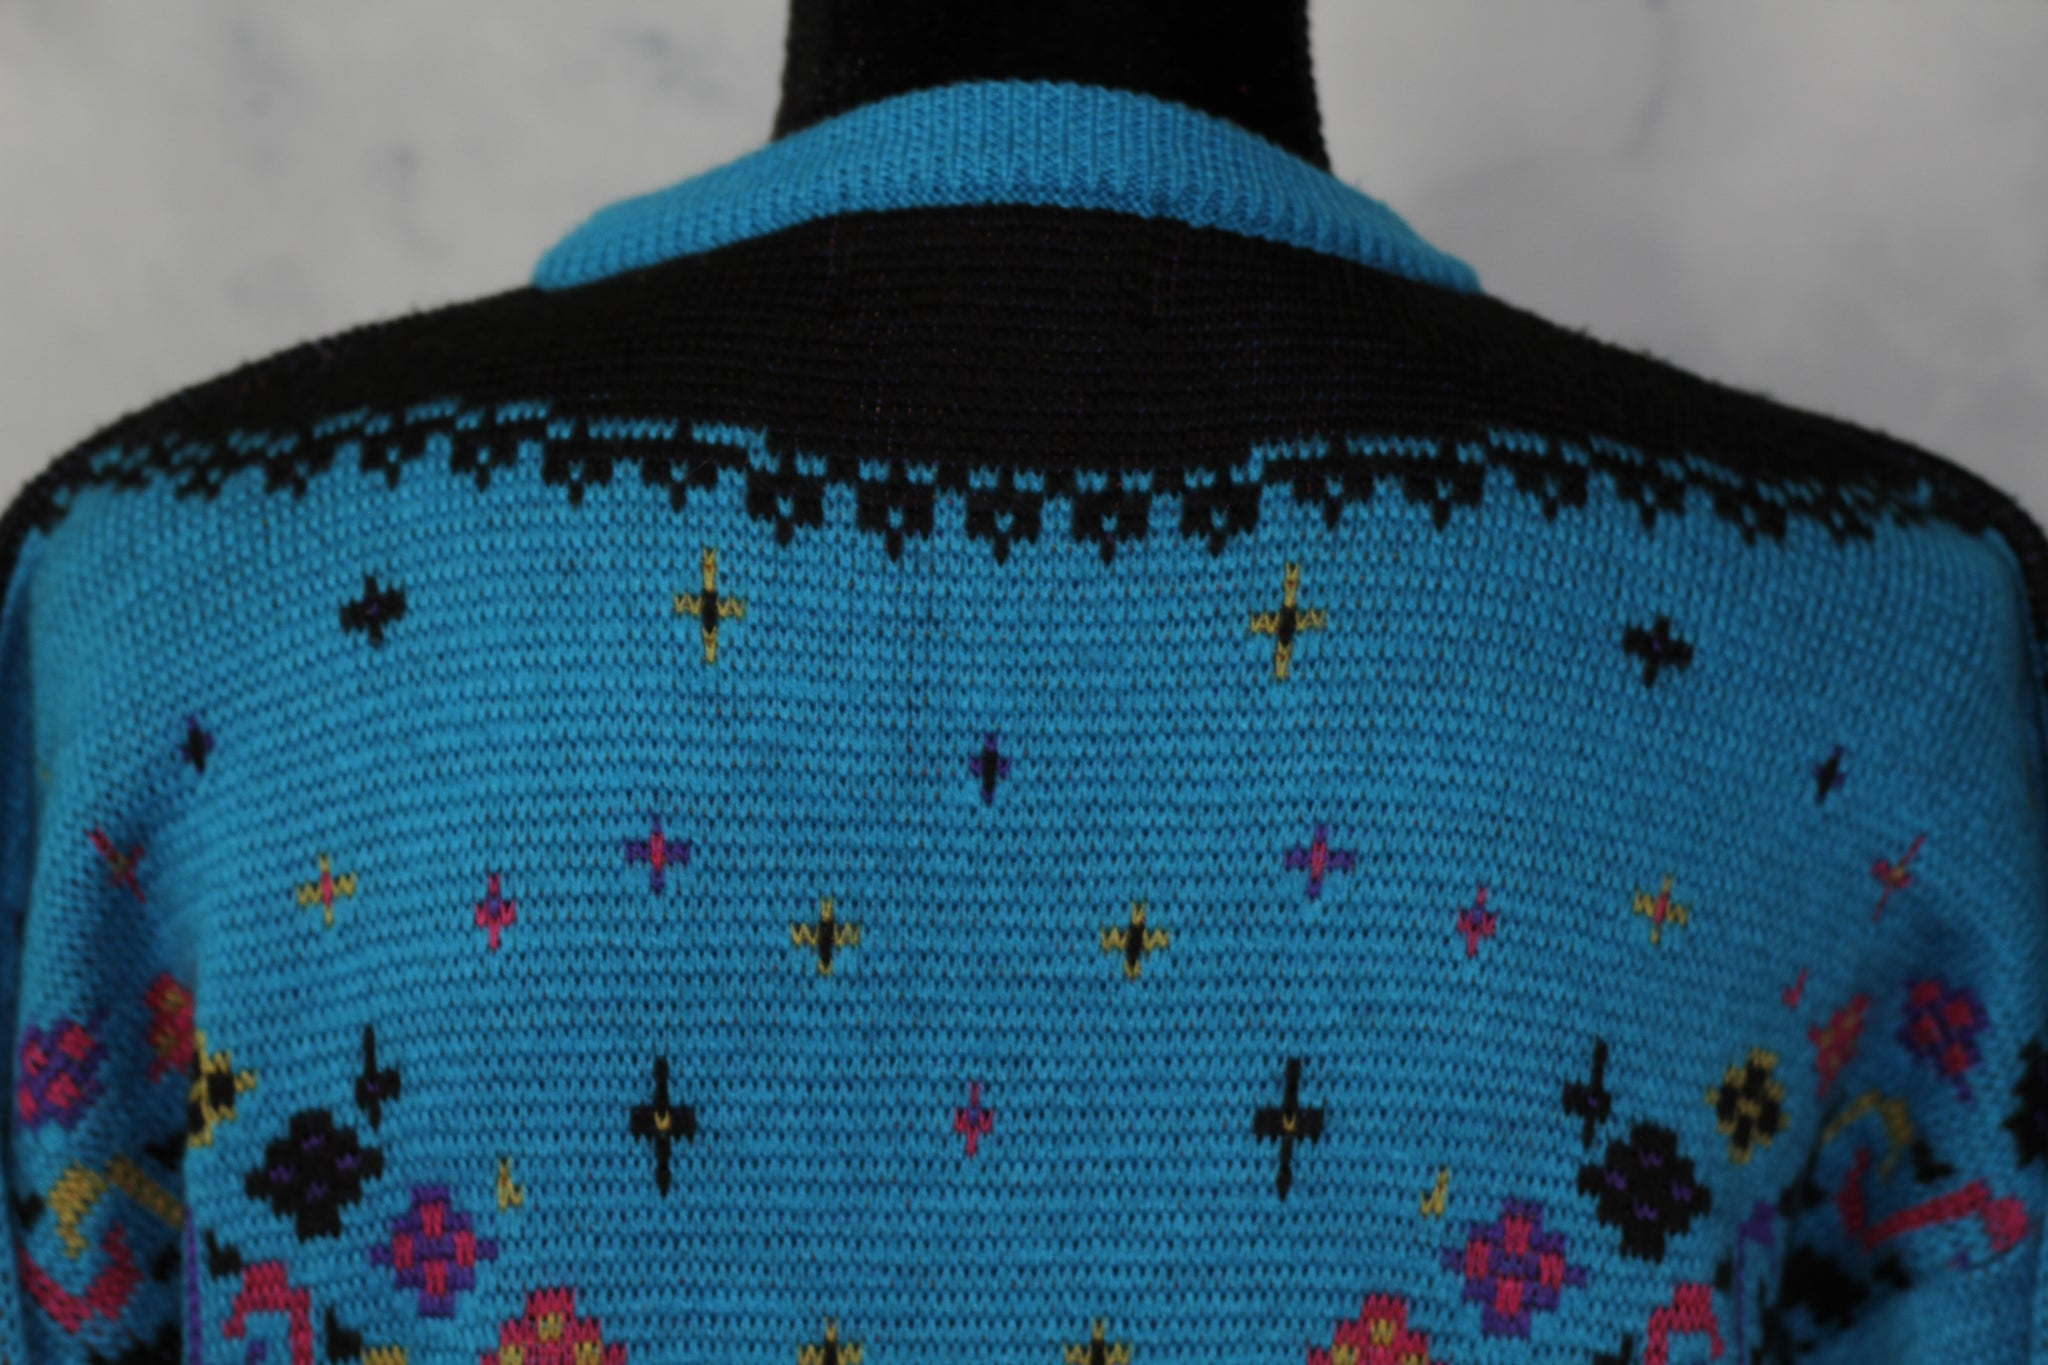 Mount Cervin Blue Wool Sweater (L)